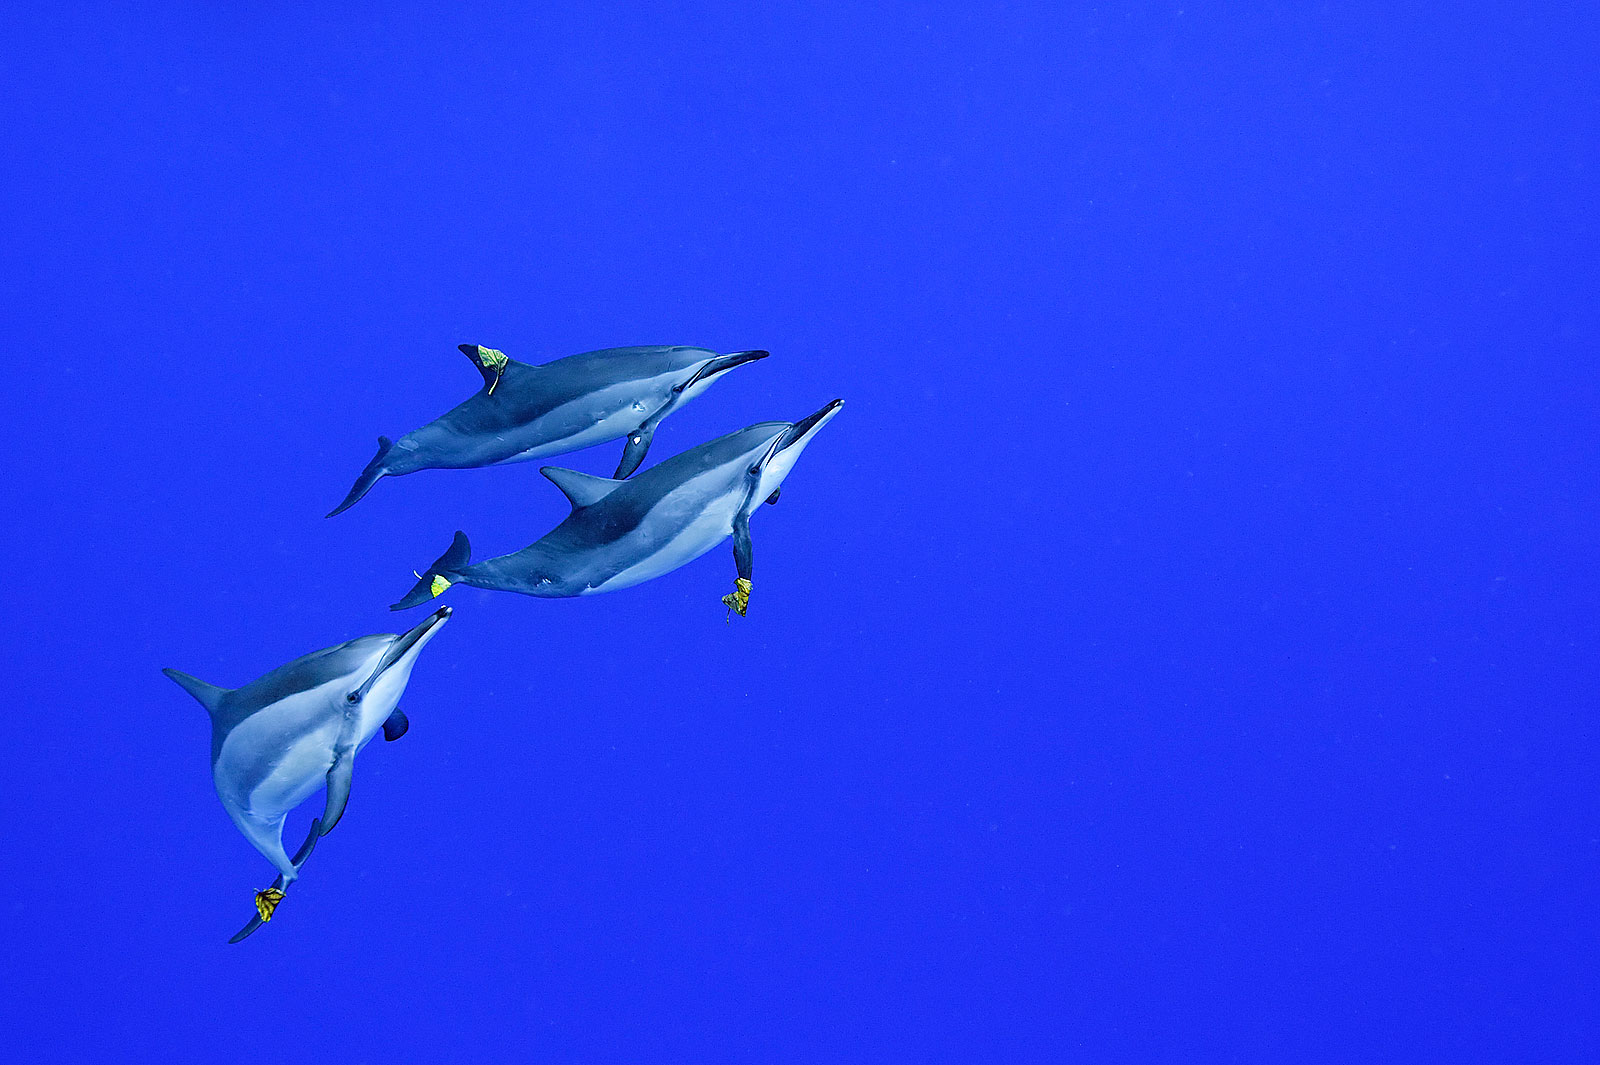 an essay about dolphins Unlike most editing & proofreading services, we edit for everything: grammar, spelling, punctuation, idea flow, sentence structure, & more get started now.